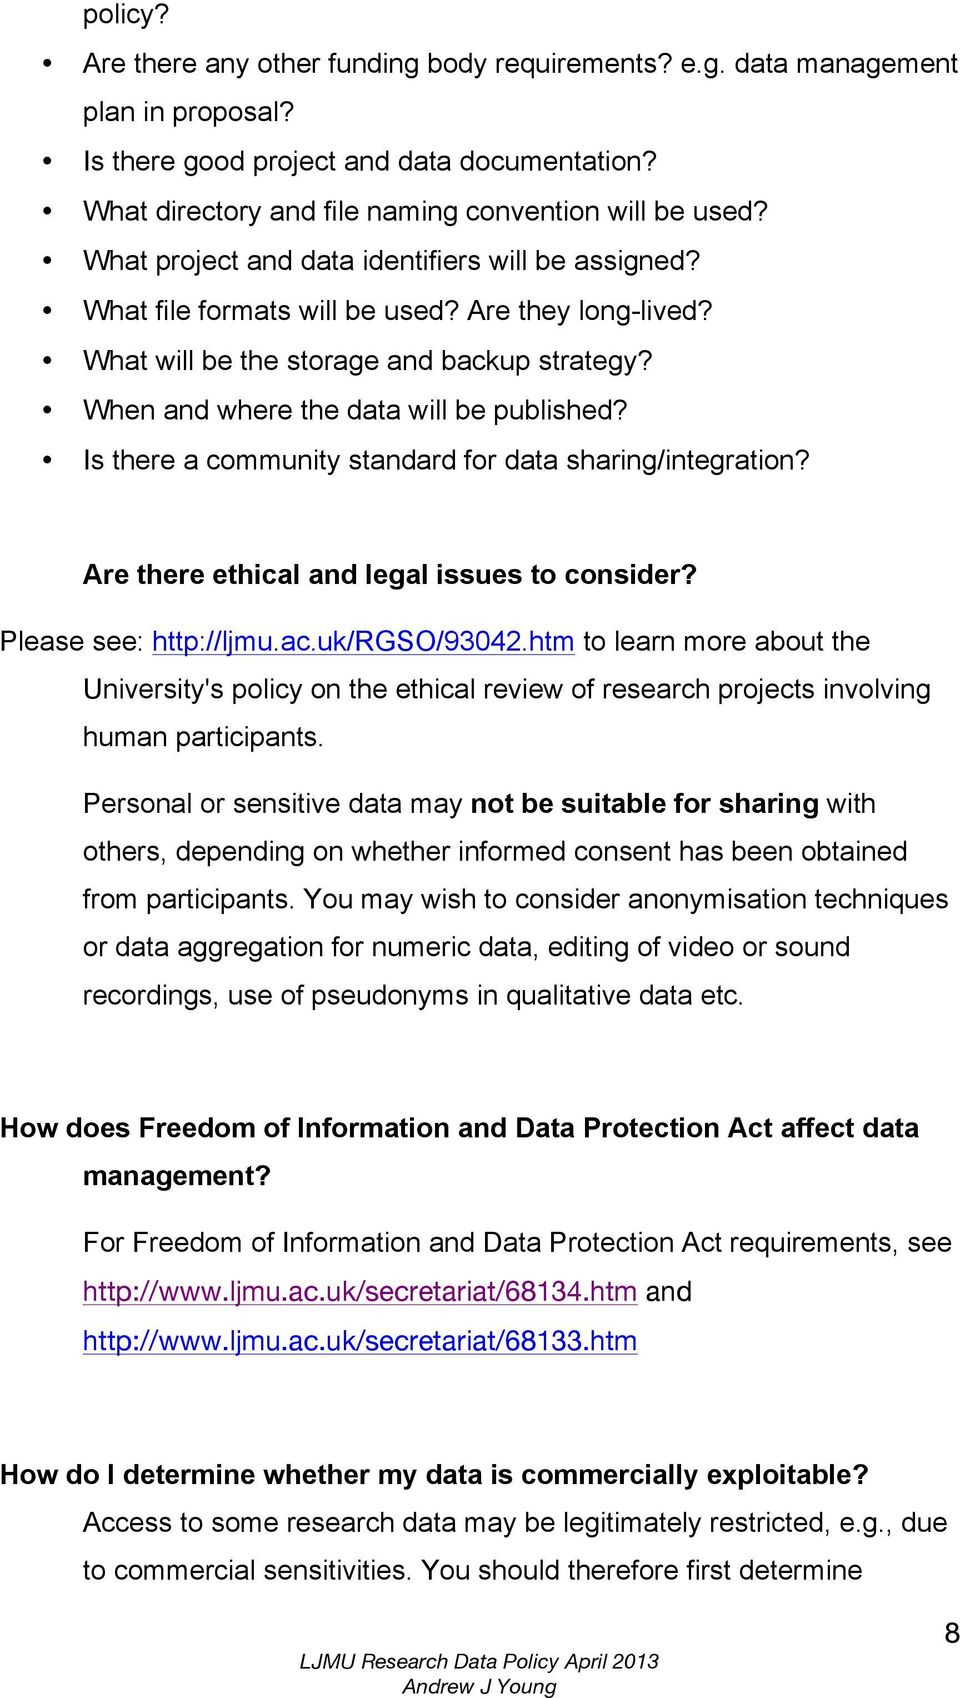 Is there a community standard for data sharing/integration? Are there ethical and legal issues to consider? Please see: http://ljmu.ac.uk/rgso/93042.